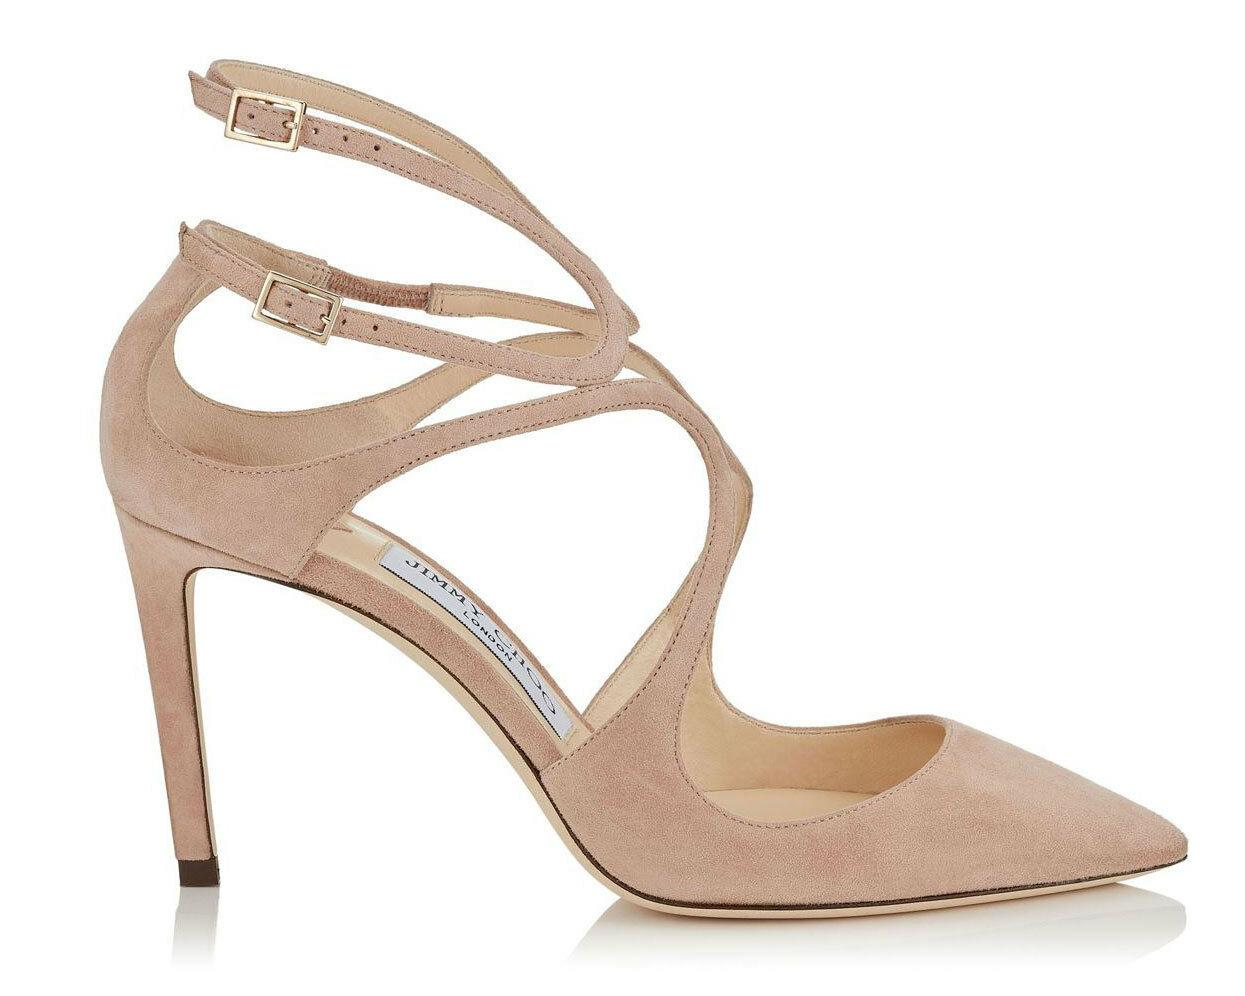 Jimmy Choo Lancer Strappy Pumps Heels Beige Nude Suede Shoes 40